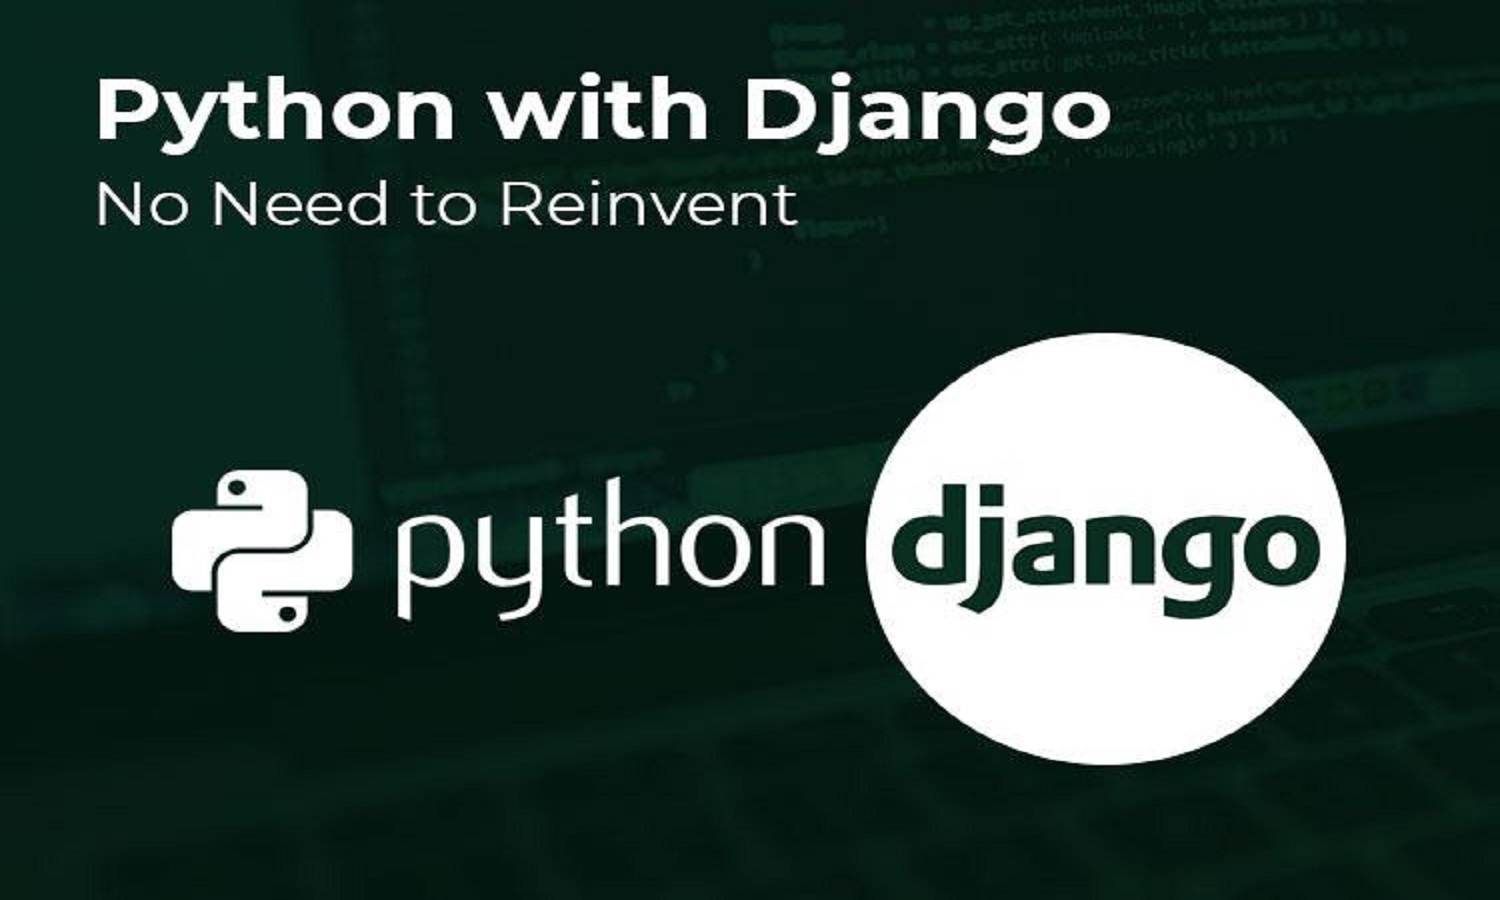 Python with Django – No Need to Reinvent